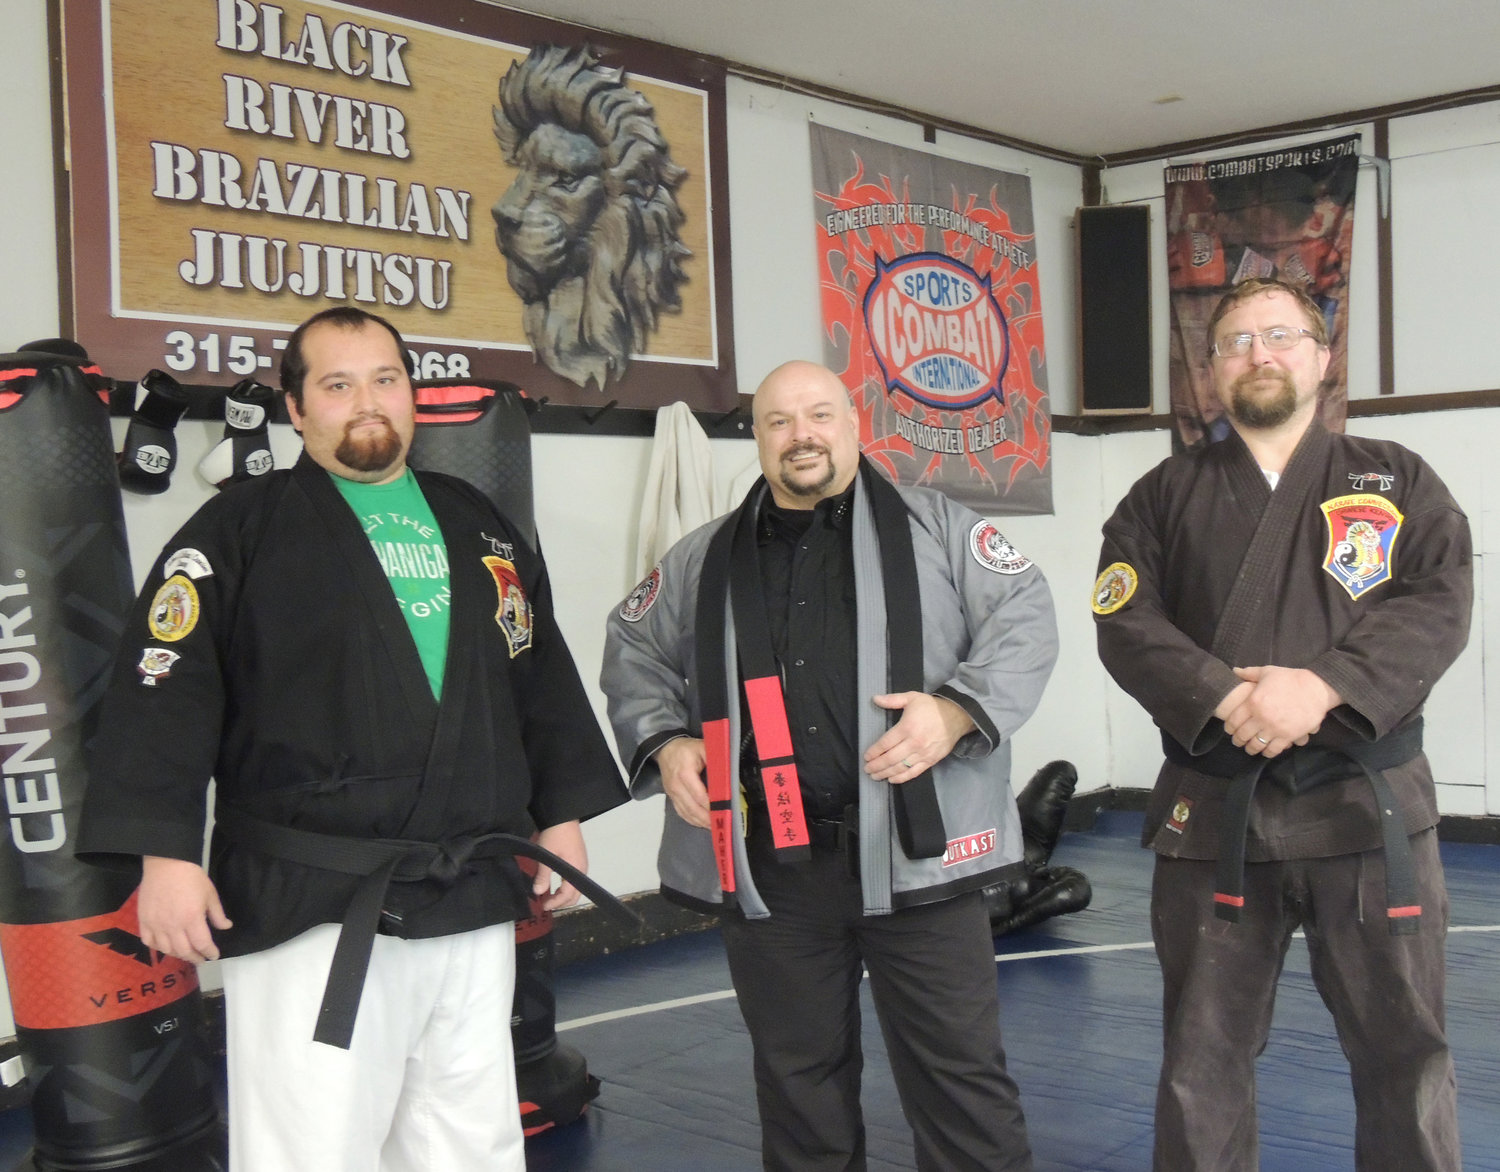 READY TO HELP OTHERS GET THEIR KICKS — The Black River Brazilian Jiu-jitsu/H.I.S. Academy of Martial Arts offers a variety of martial arts classes under the direction of Dan Maher, a 10th degree black belt; Fredrick Croniser, a second degree black belt, and Michael Lieber, a first degree black belt.